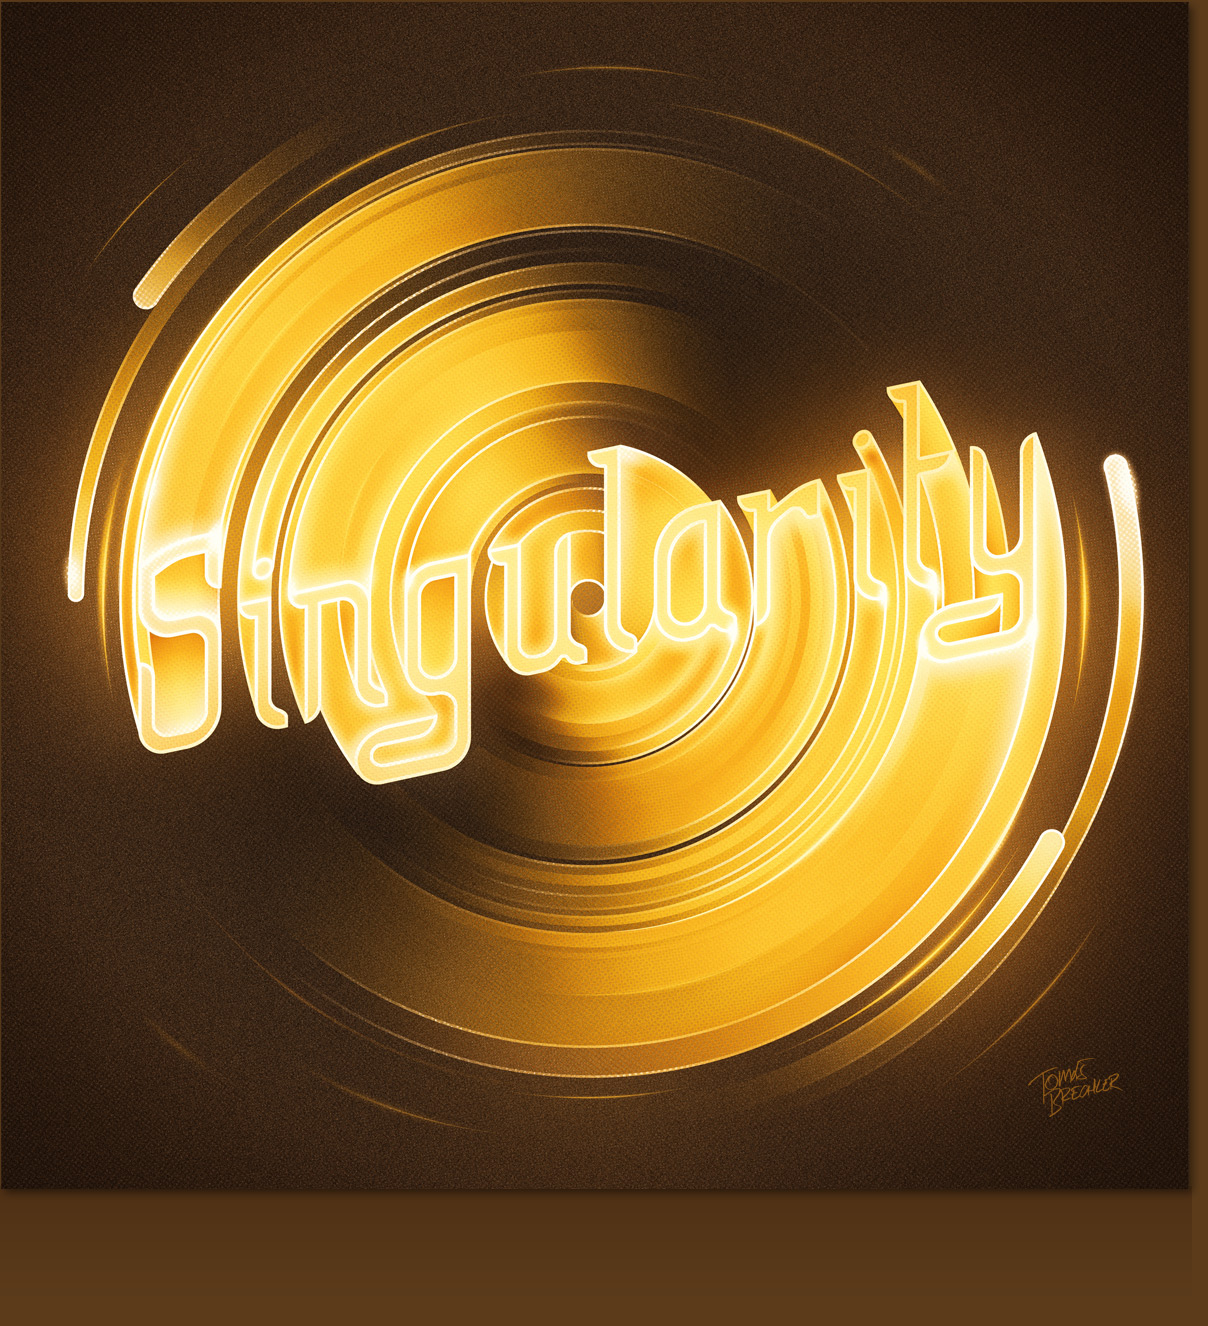 singularity-wp